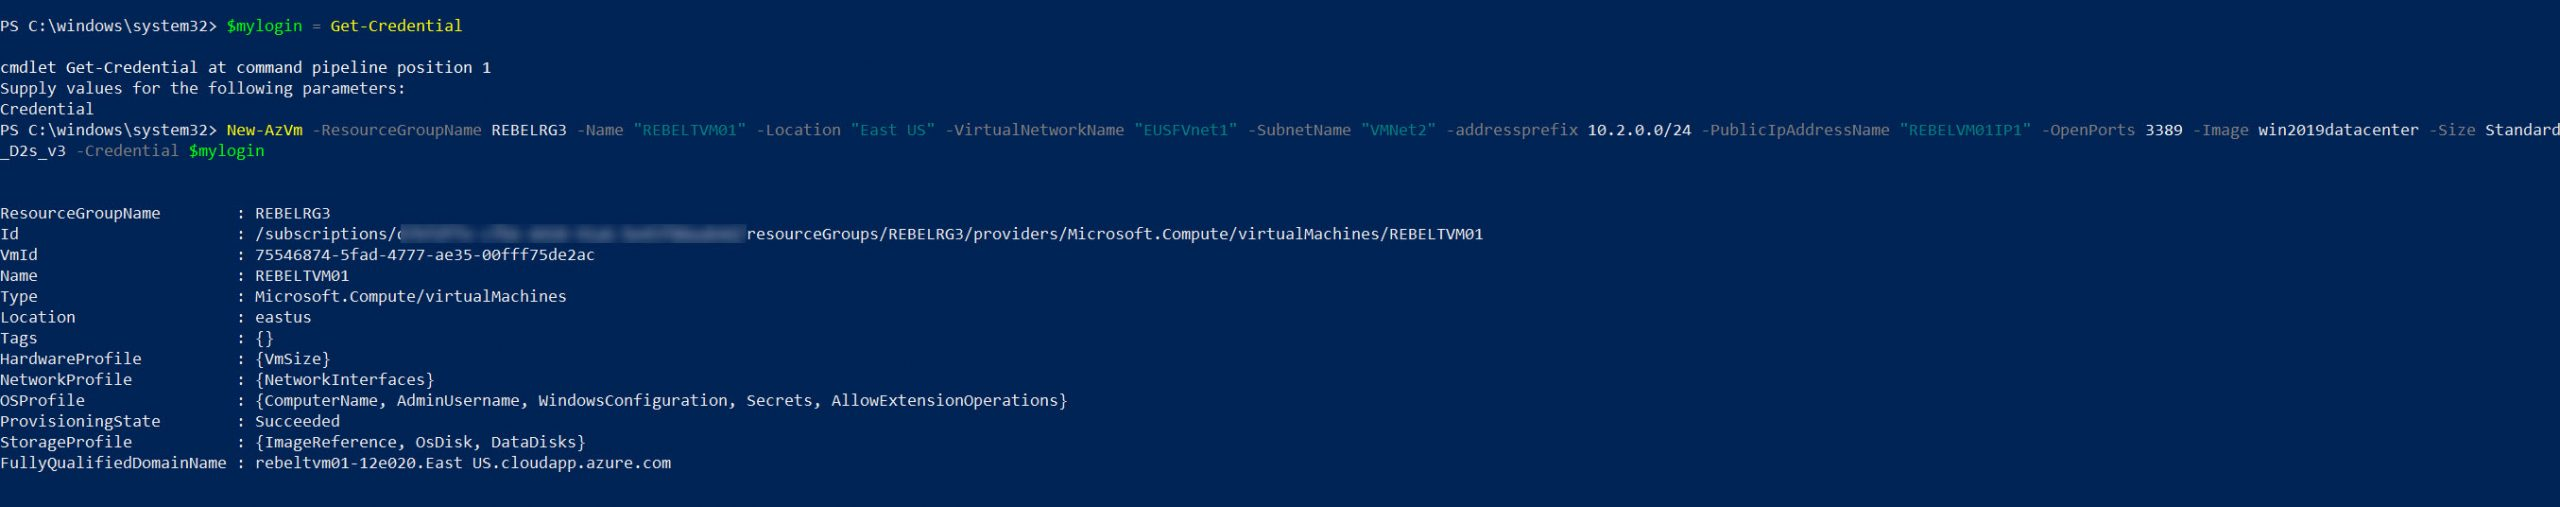 create azure vm in workload infrastructure